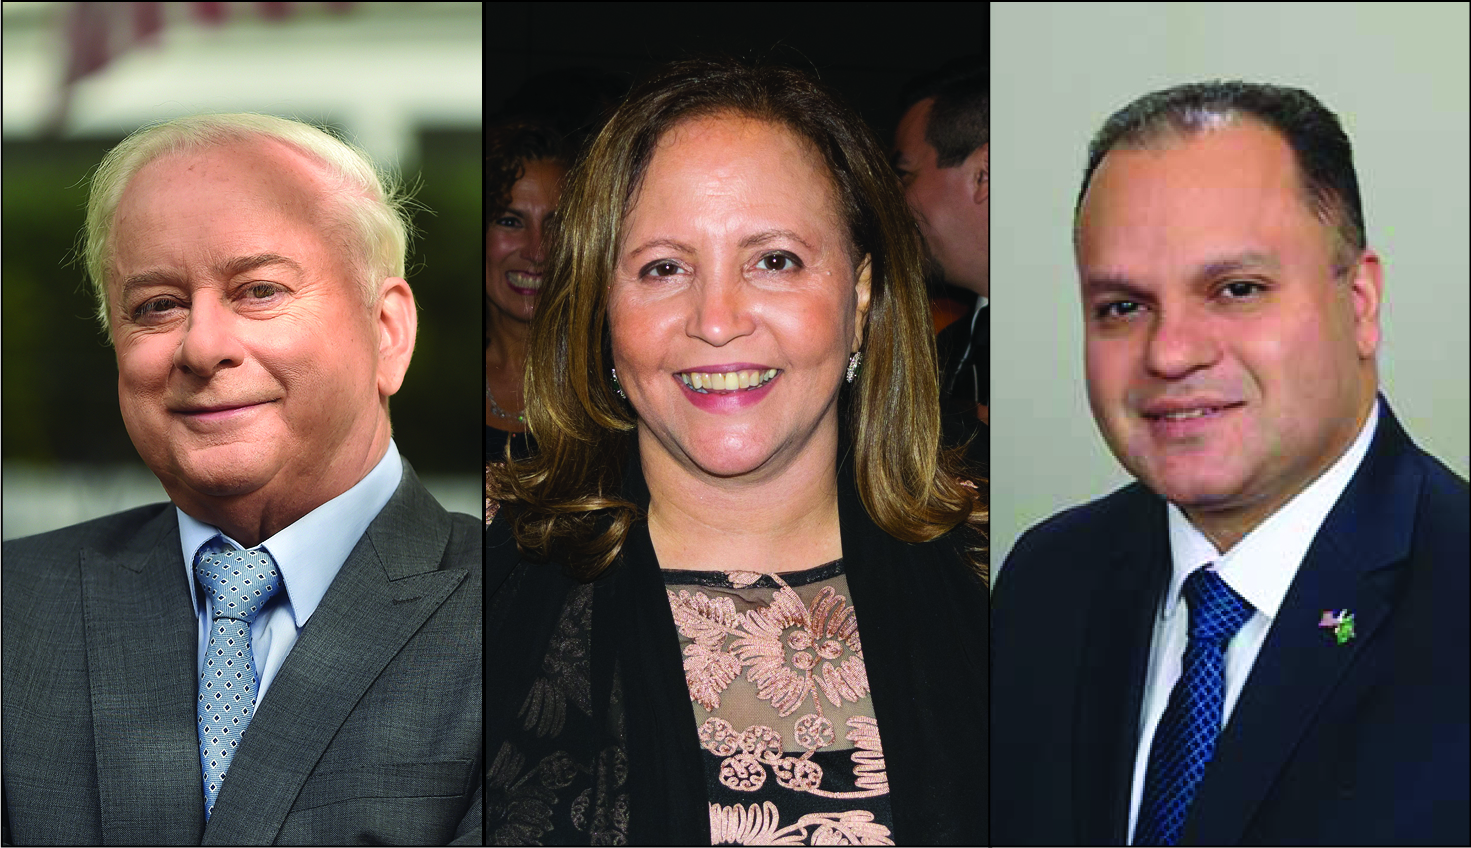 Former Judge Gregory Lasak, former prosecutor Betty Lugo and former prosecutor Jose Nieves will each appear on the June 25 primary ballot. Photos via campaigns